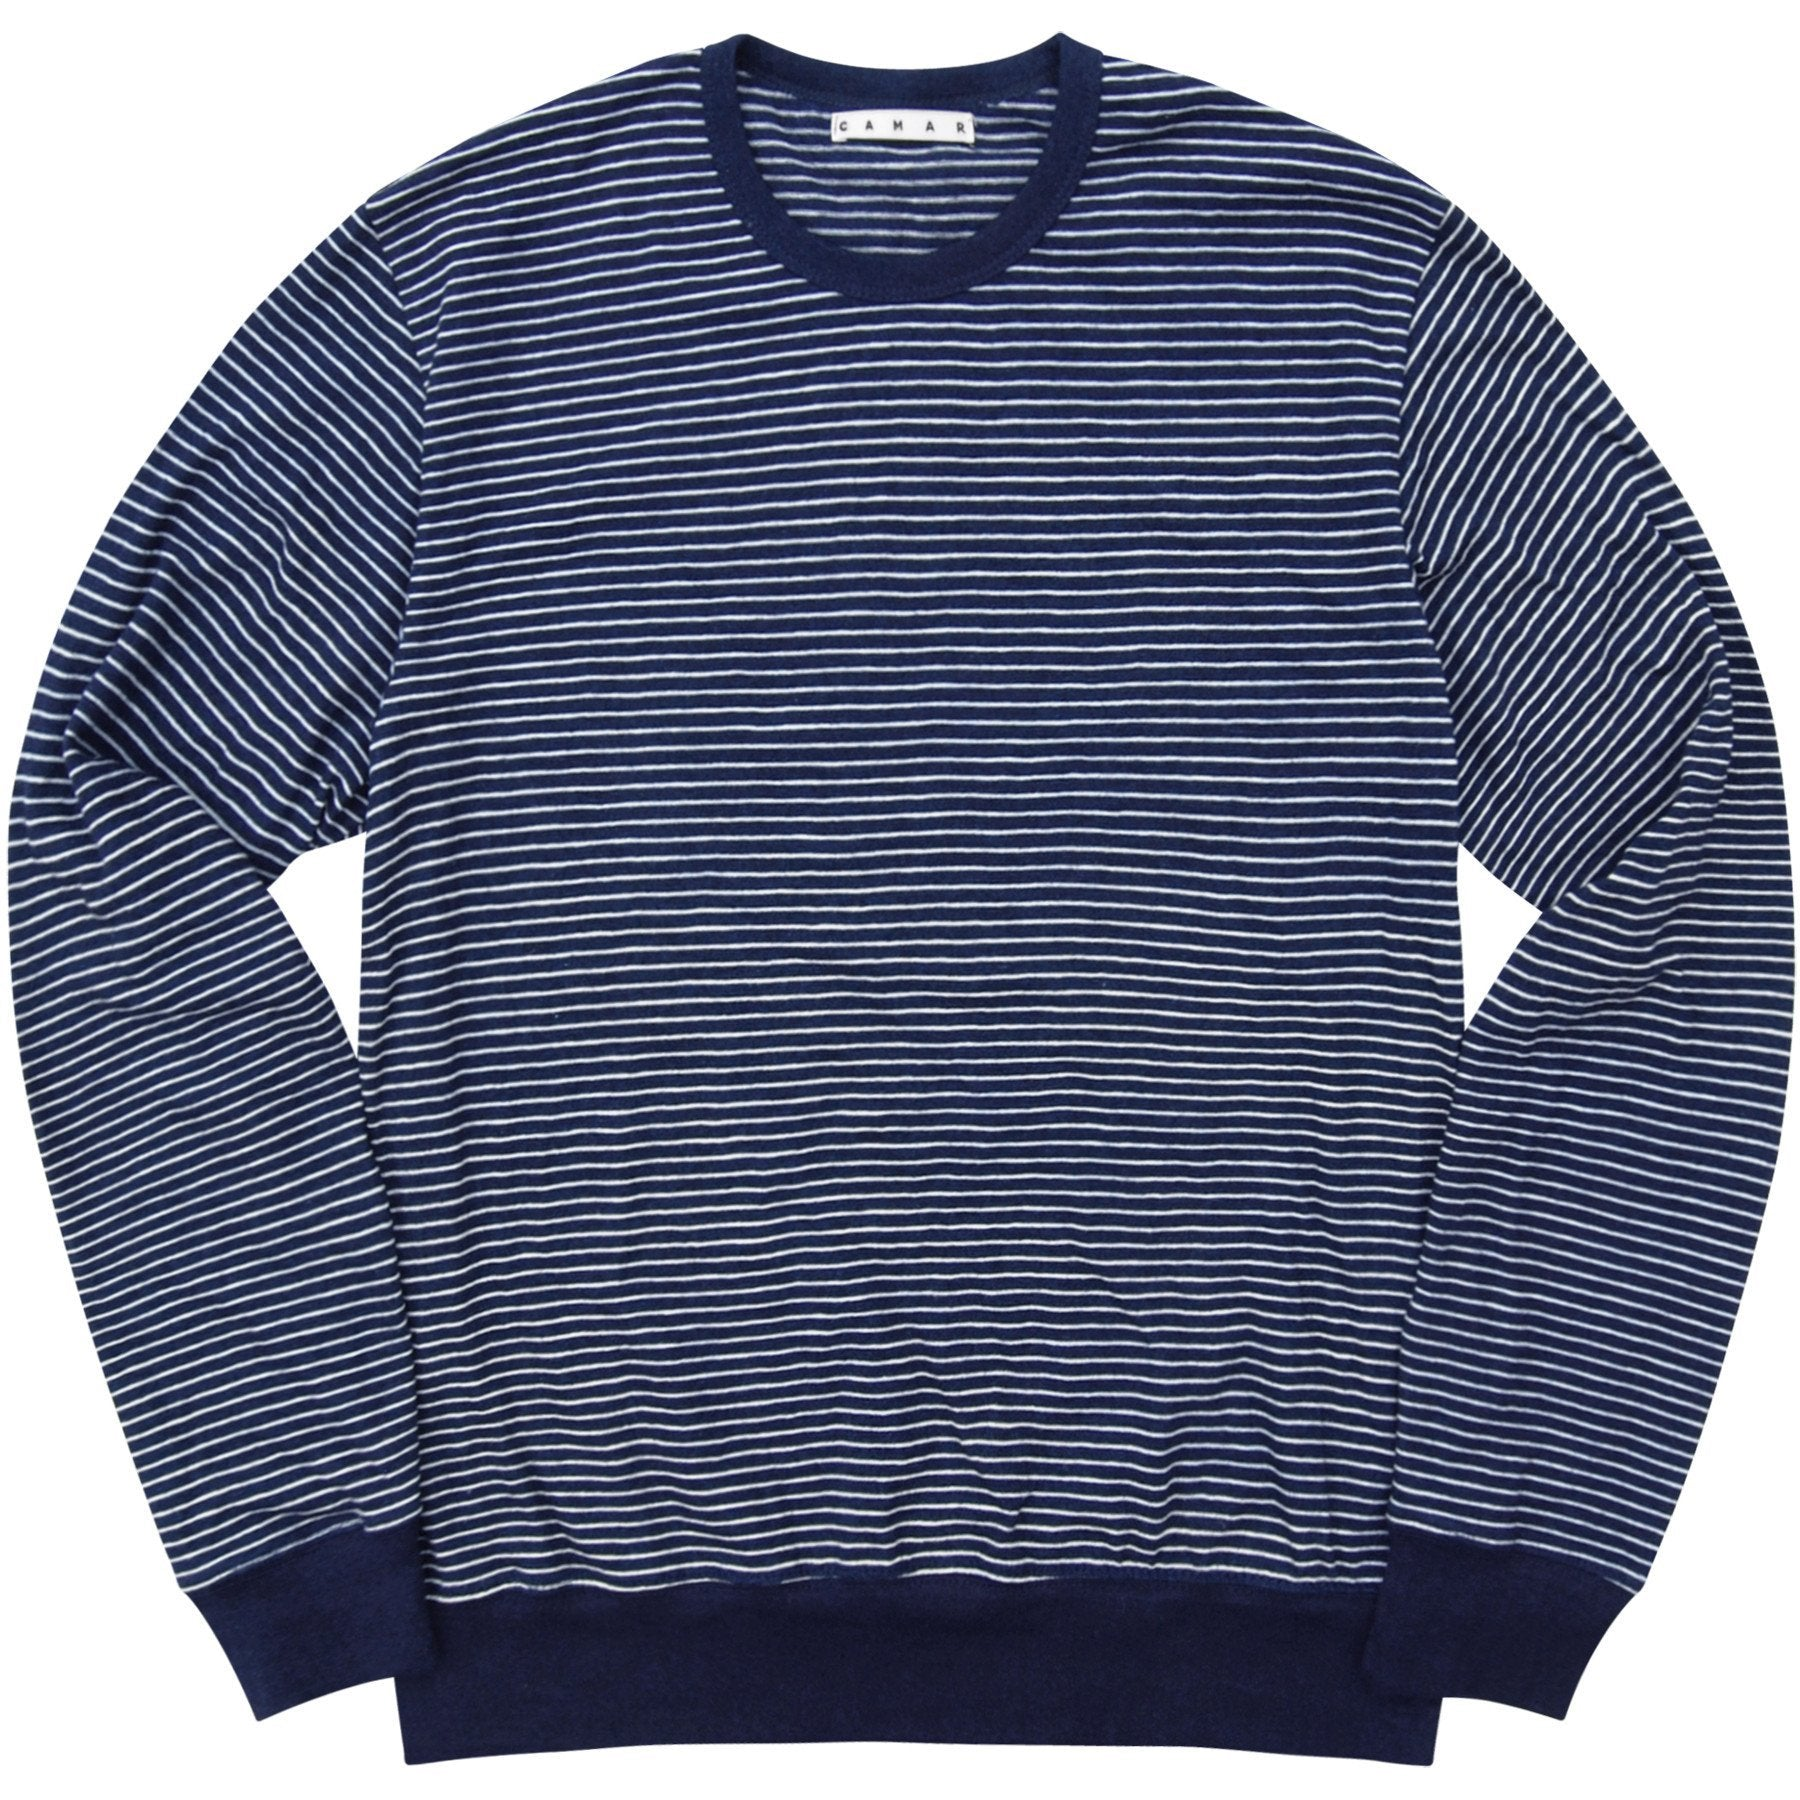 Gram Long Sleeve Shirt (Indigo)